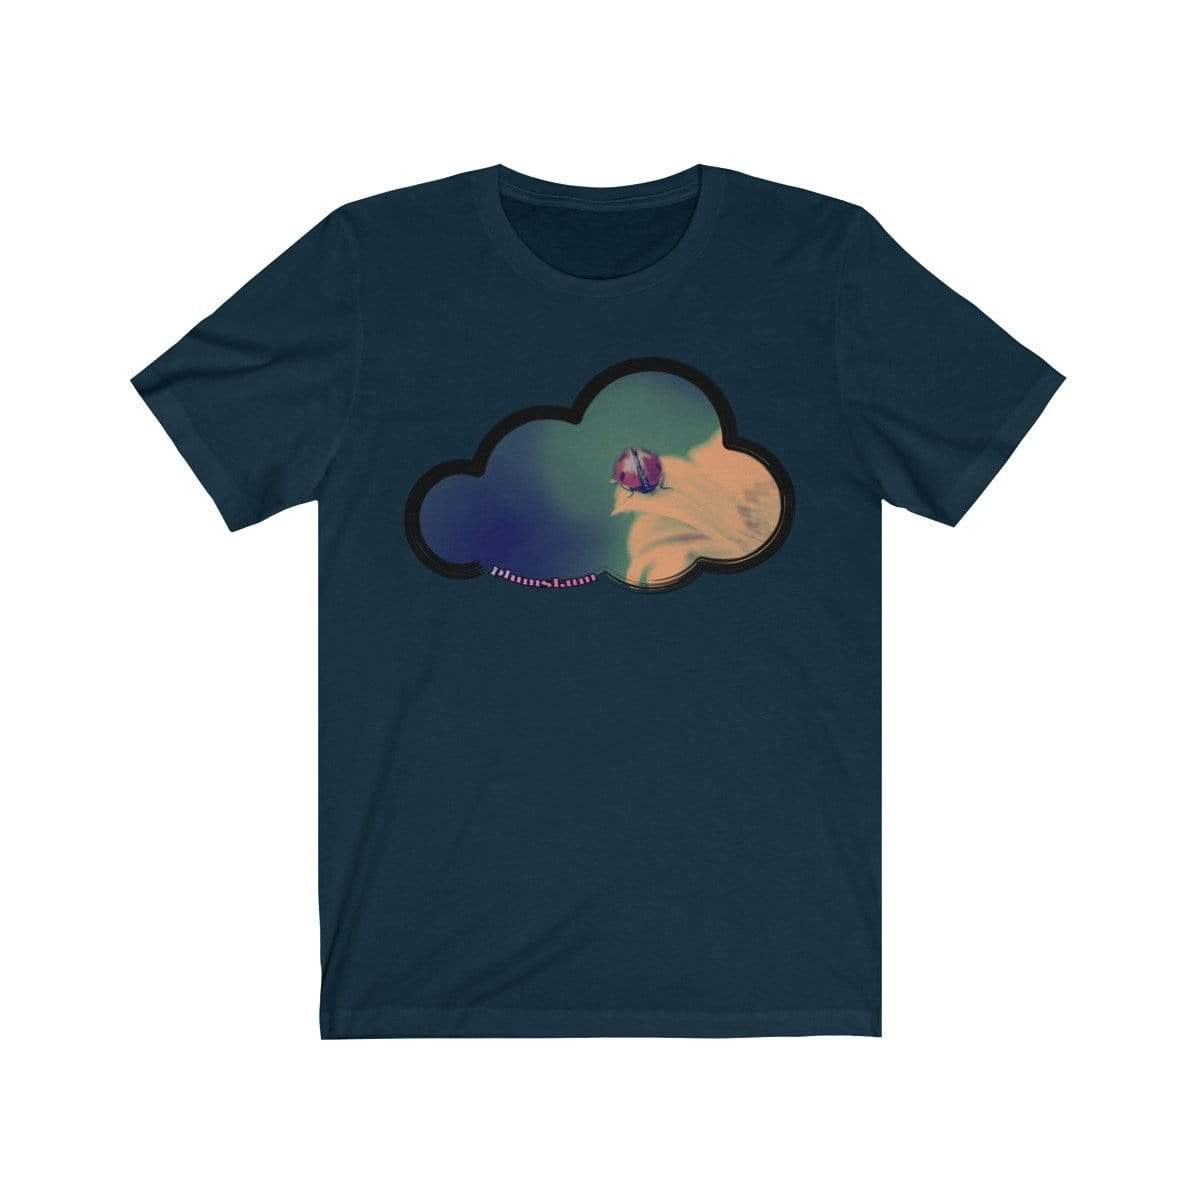 Printify T-Shirt Navy / M Ladybug Art Clouds Tee